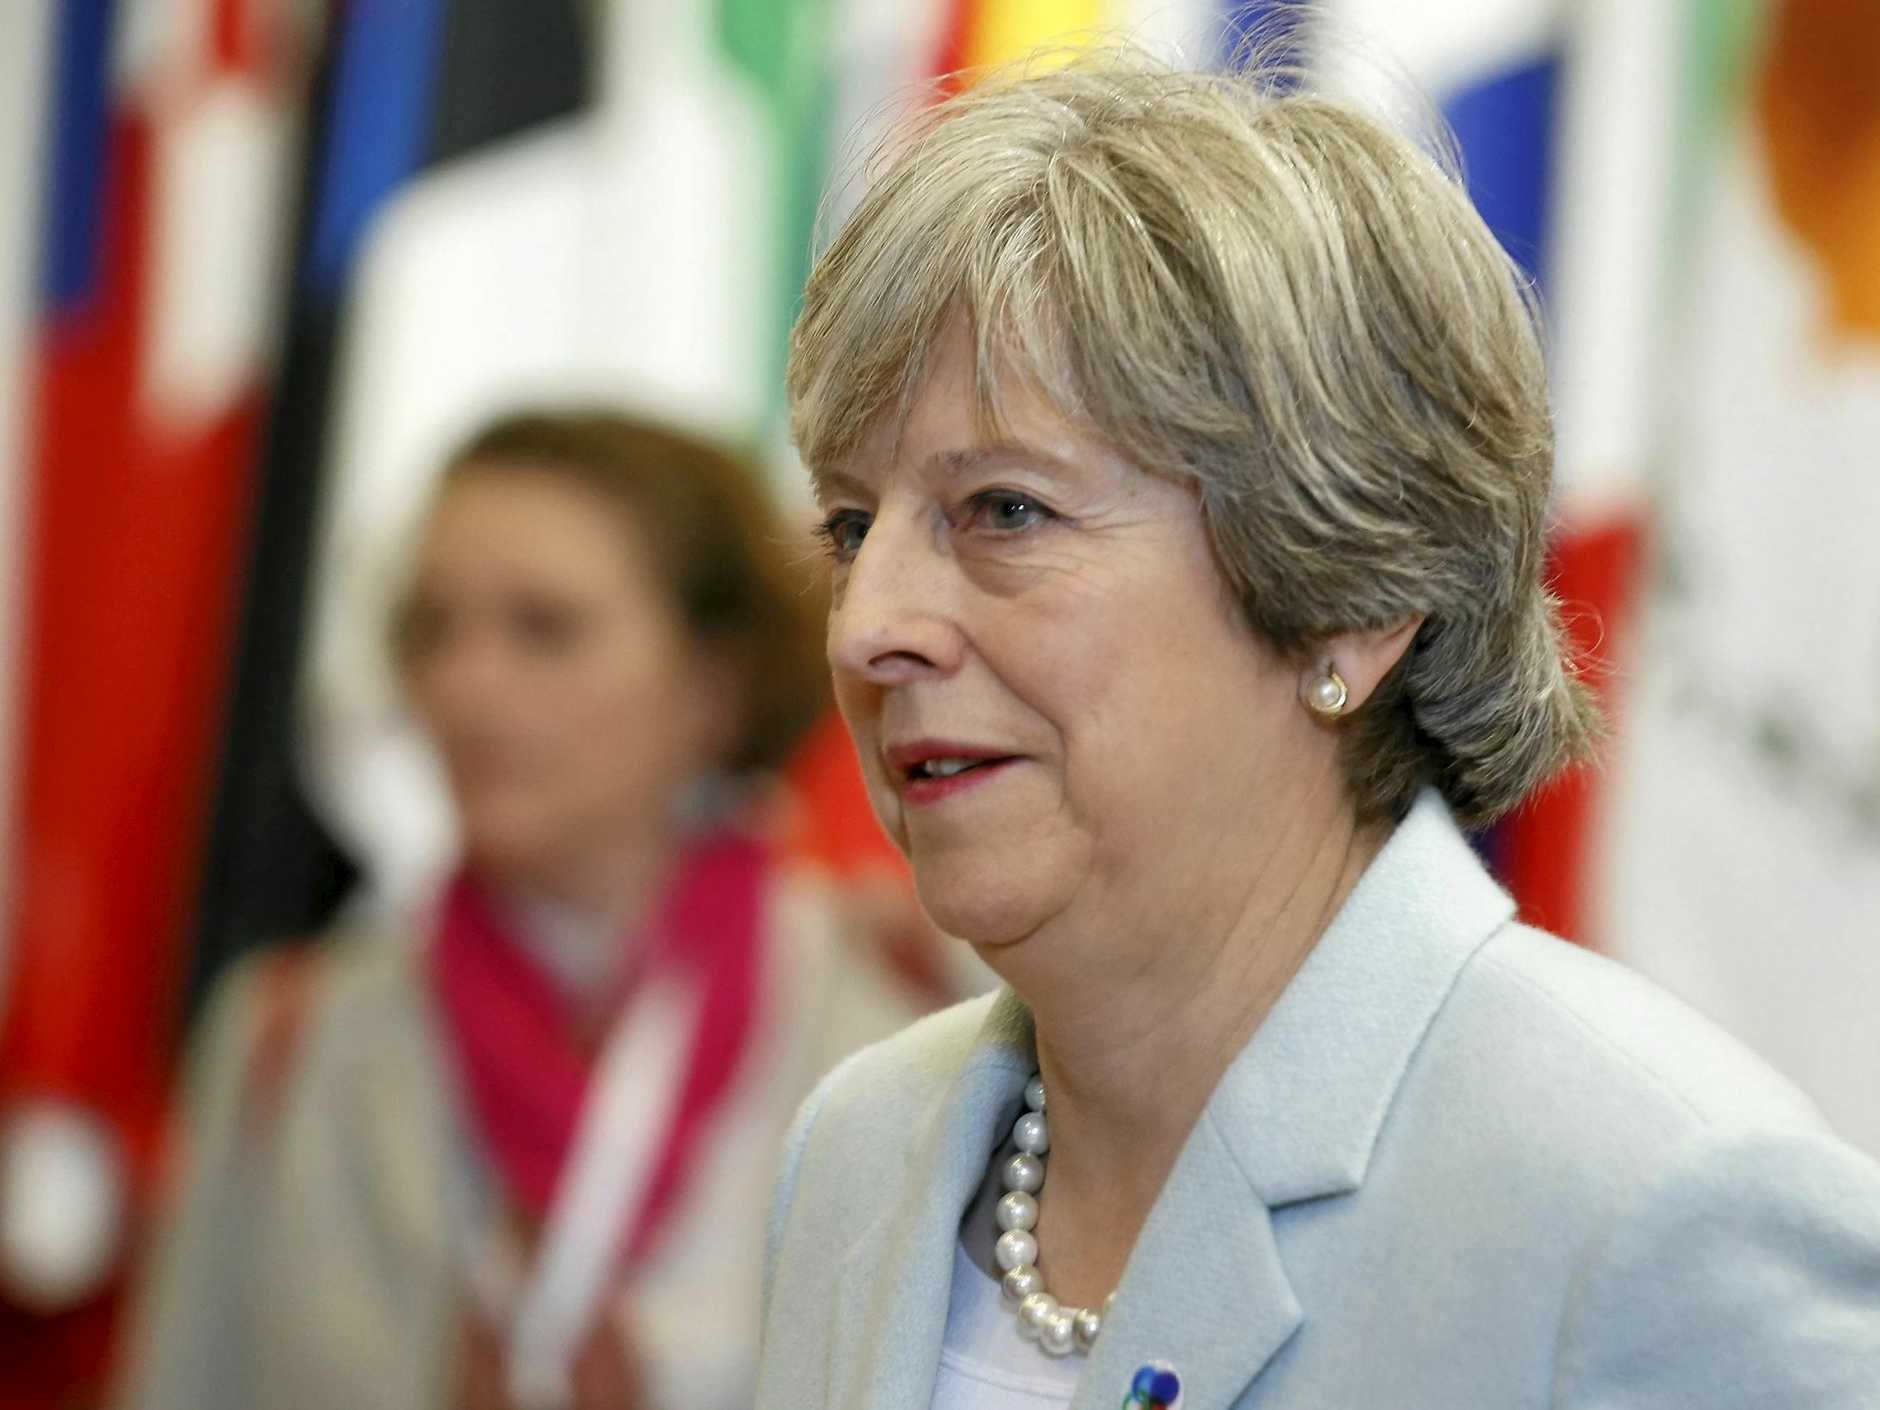 British Prime Minister Theresa May appears to be edging closer to a Brexit deal with the European Union.